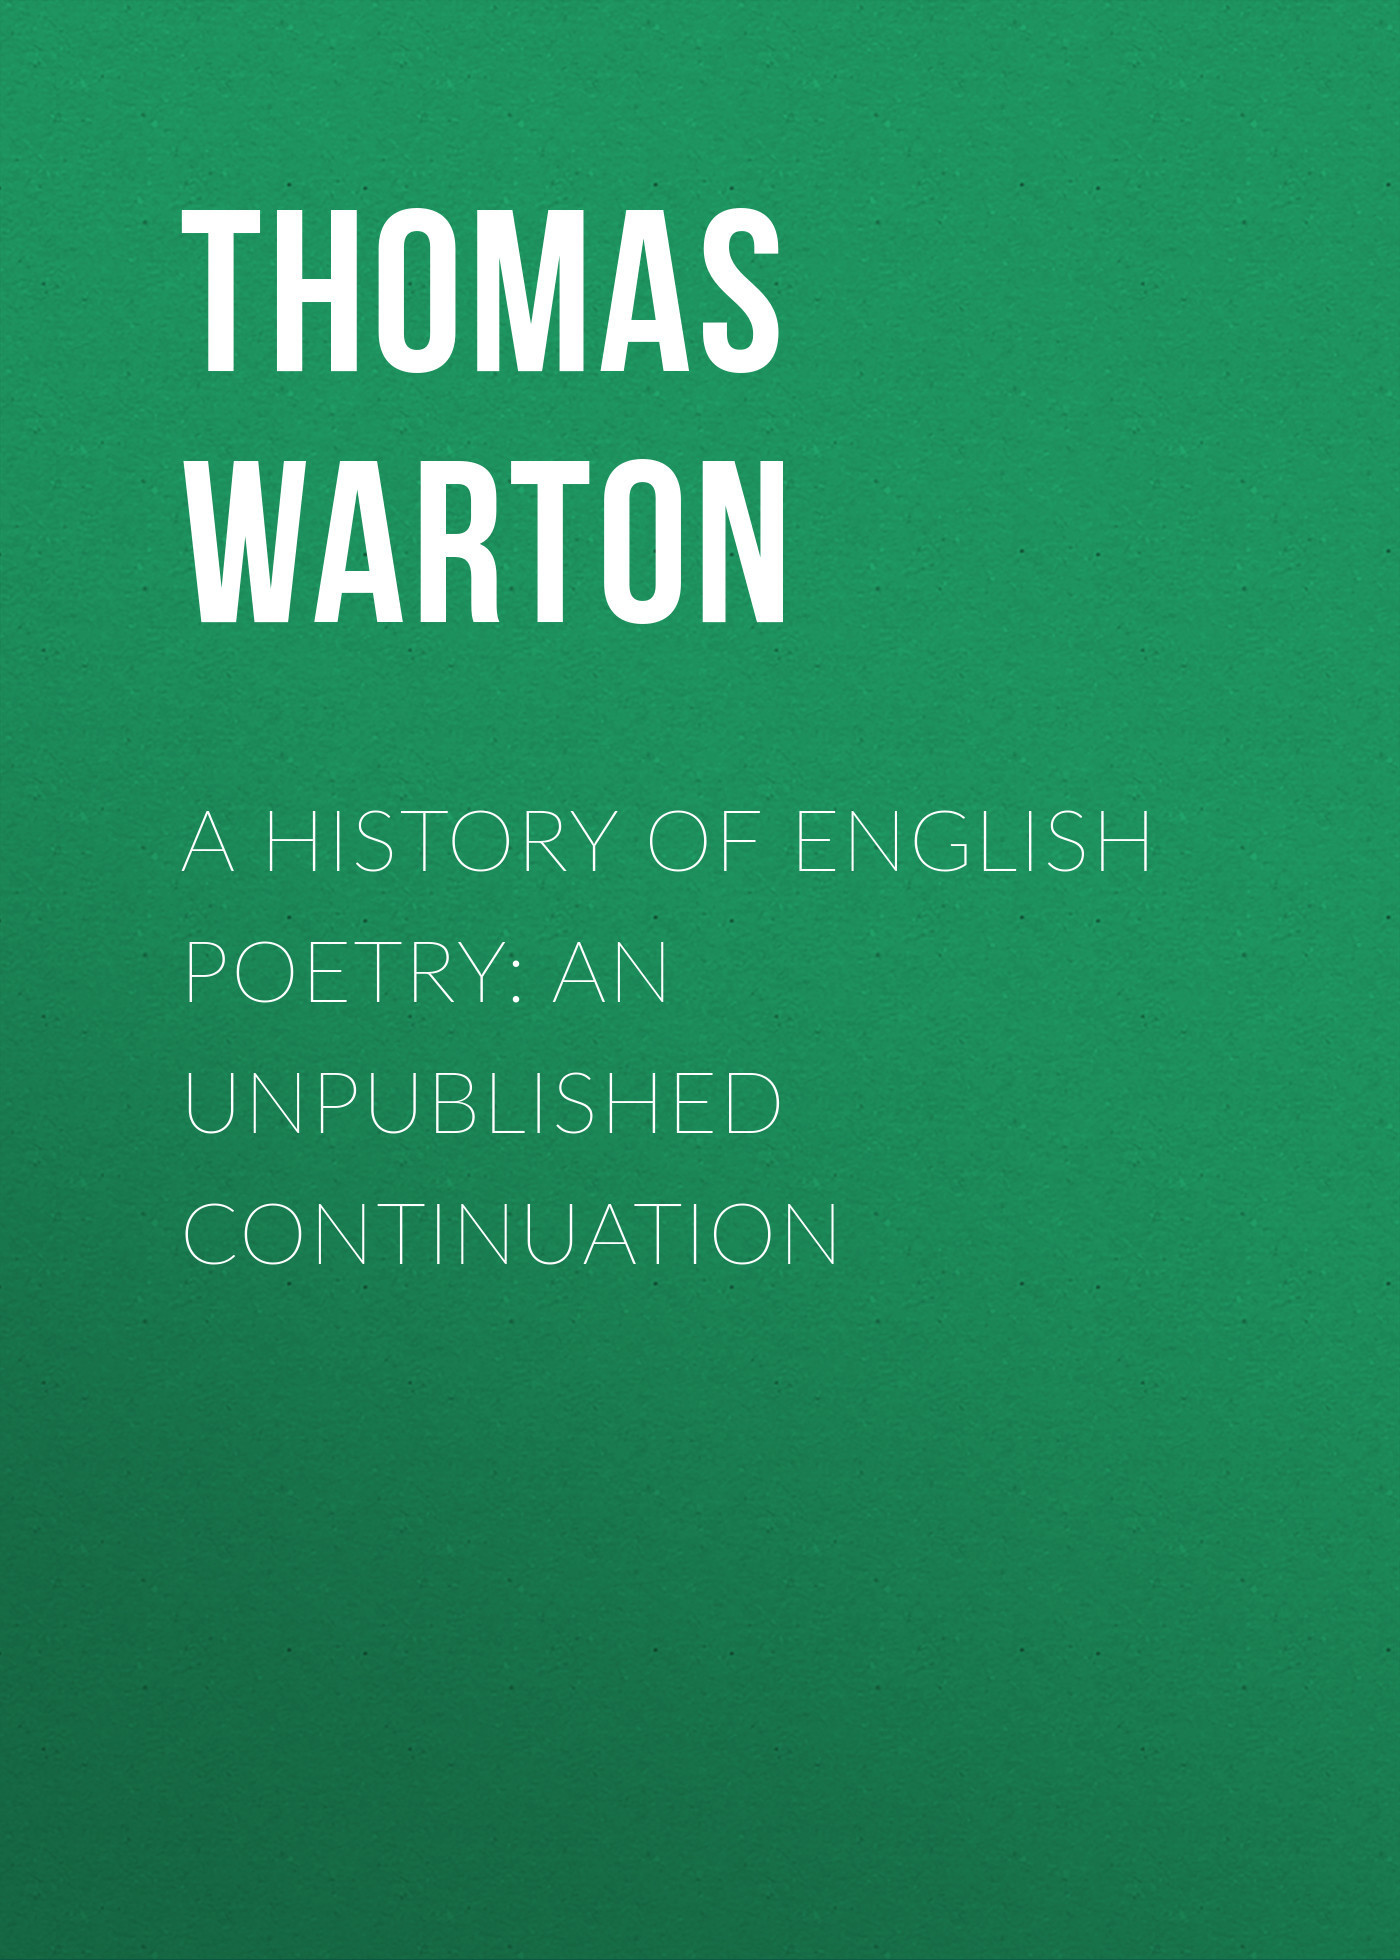 Thomas Warton A History of English Poetry: an Unpublished Continuation akins thomas b history of halifax city